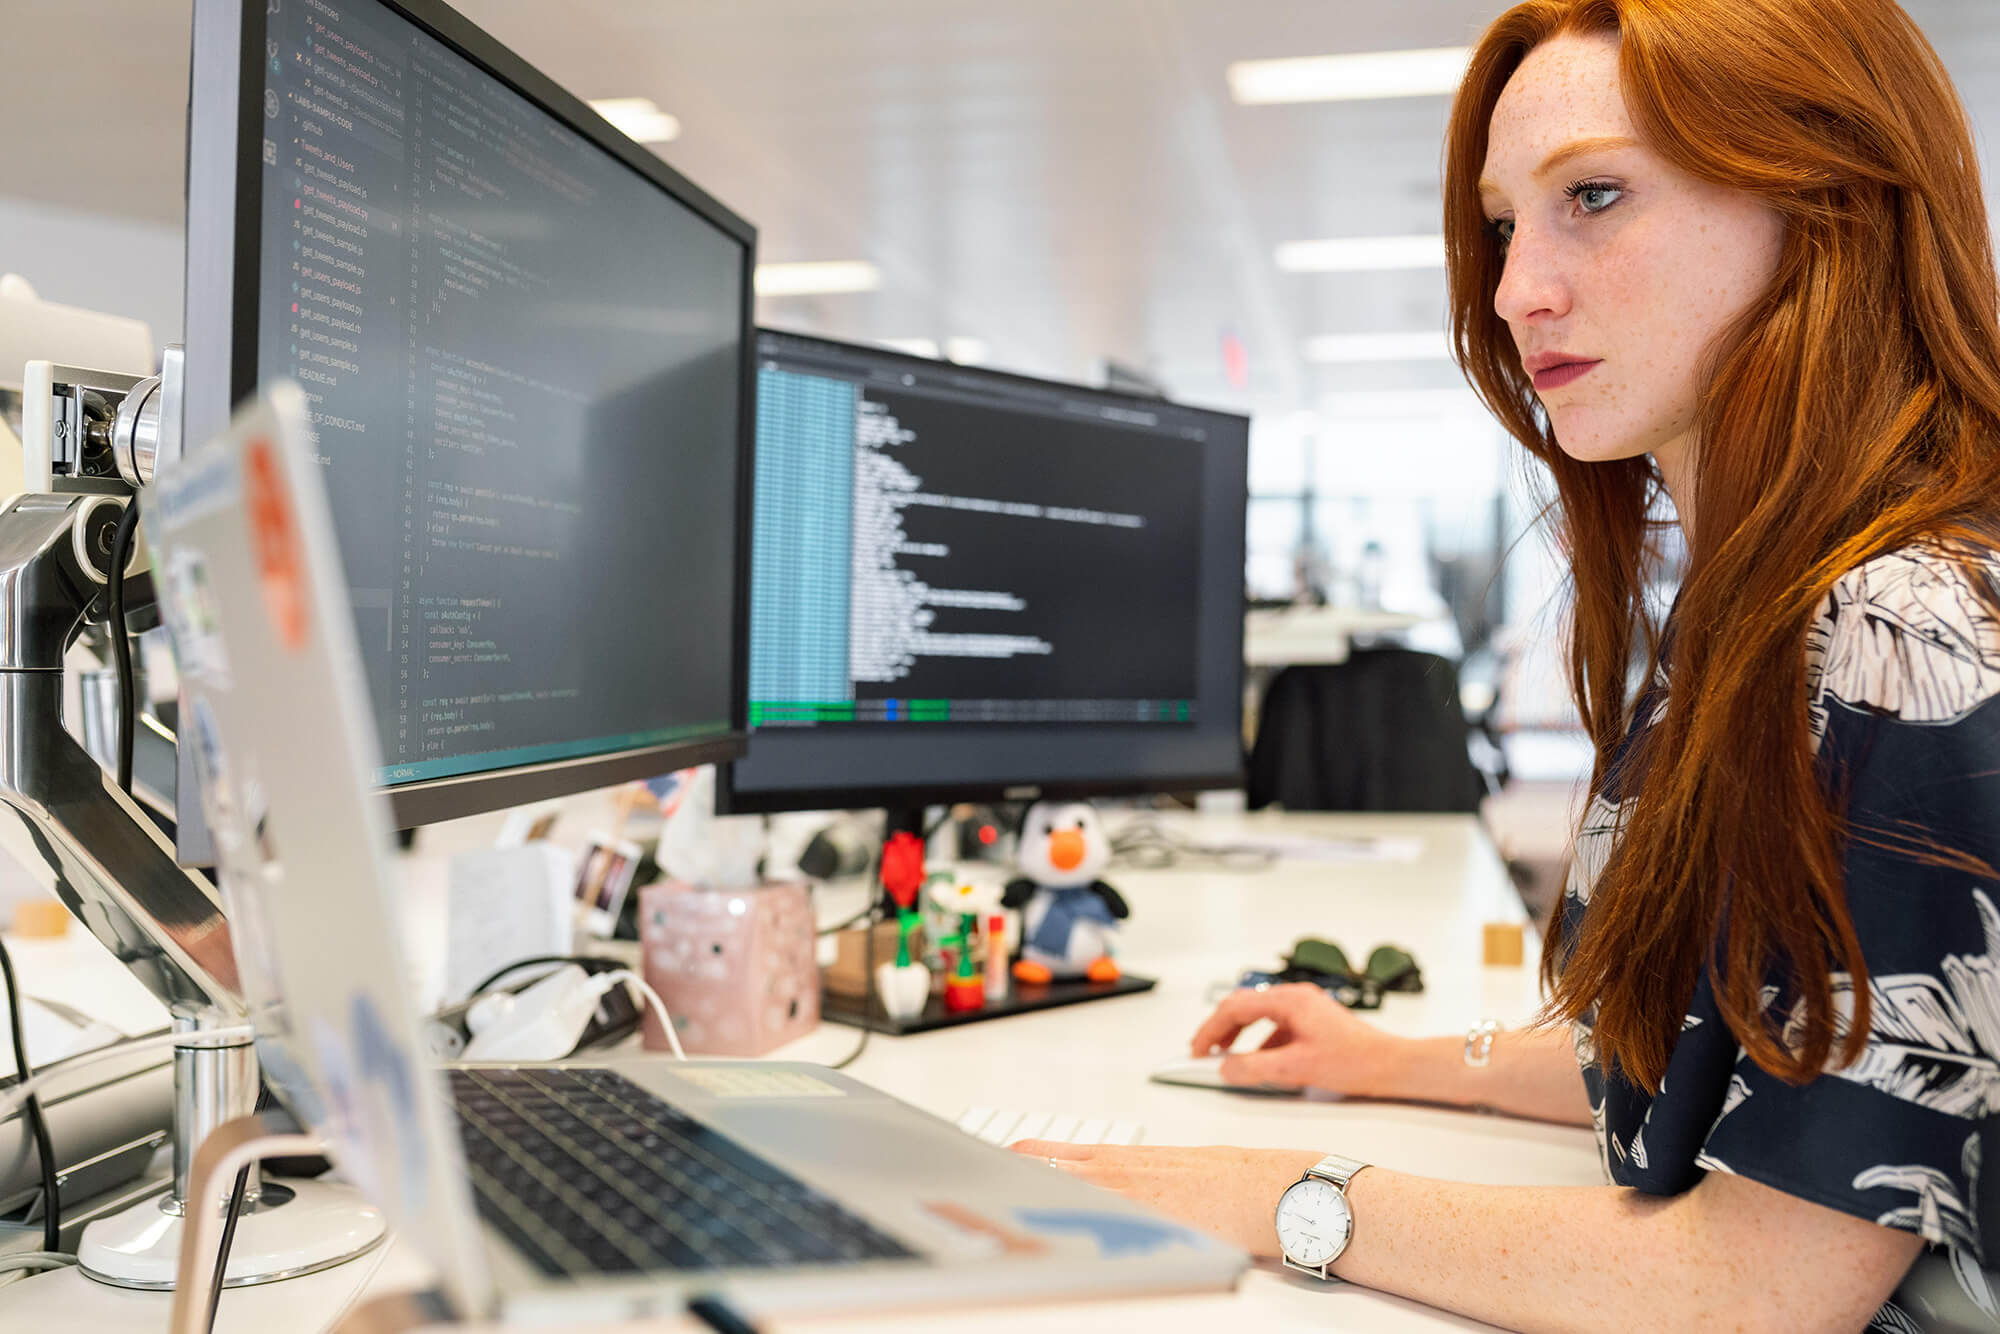 There's a lot of factors to consider regarding the pros and cons of software development outsourcing when making an informed choice for your business.